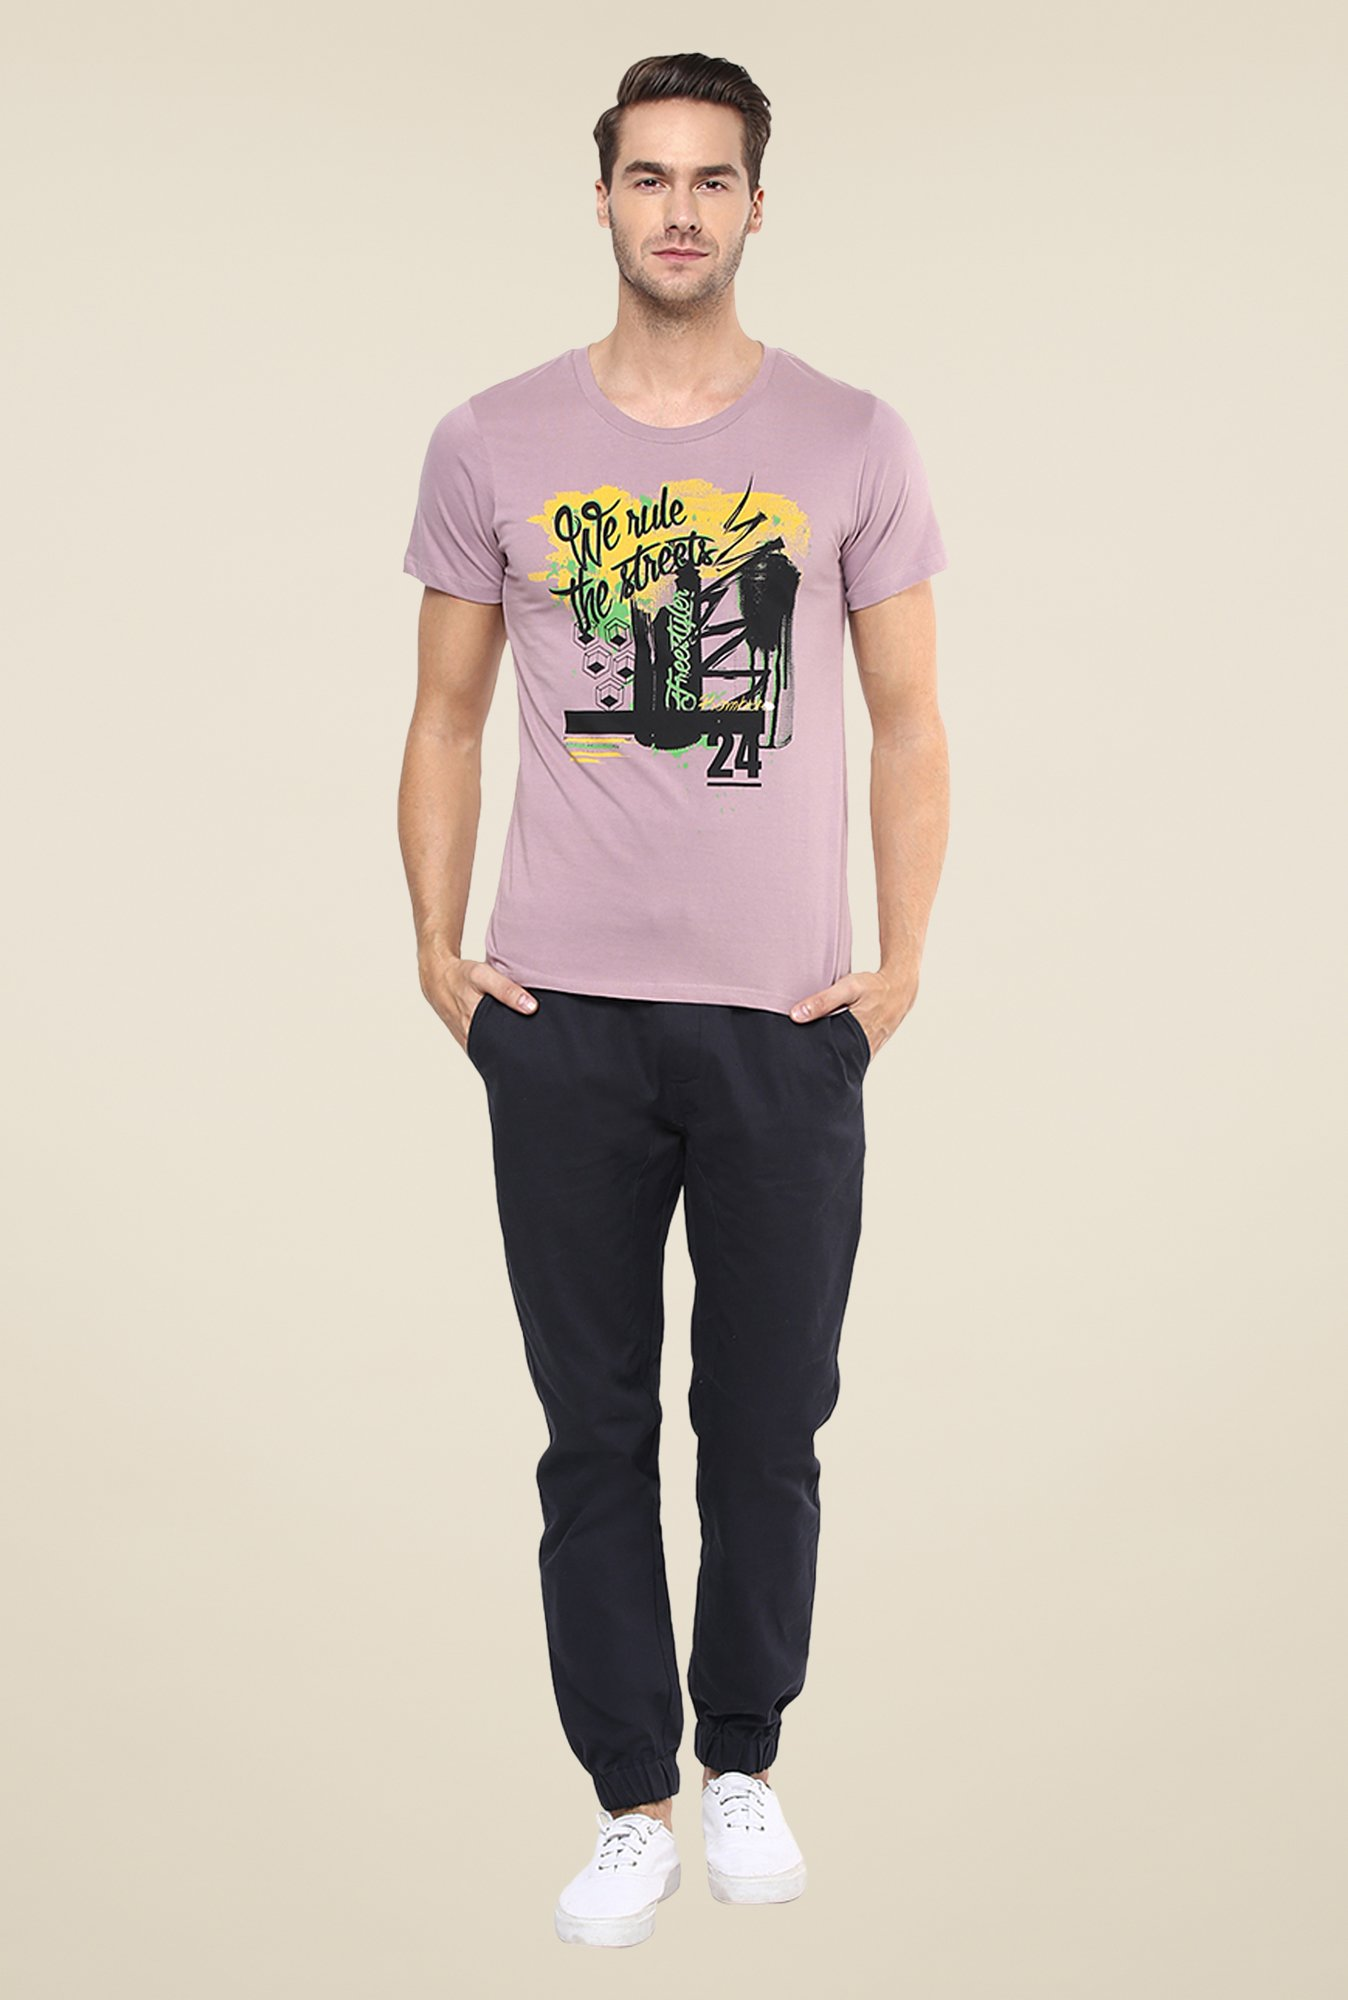 Yepme We Rule The Streets Purple Graphic Print T Shirt